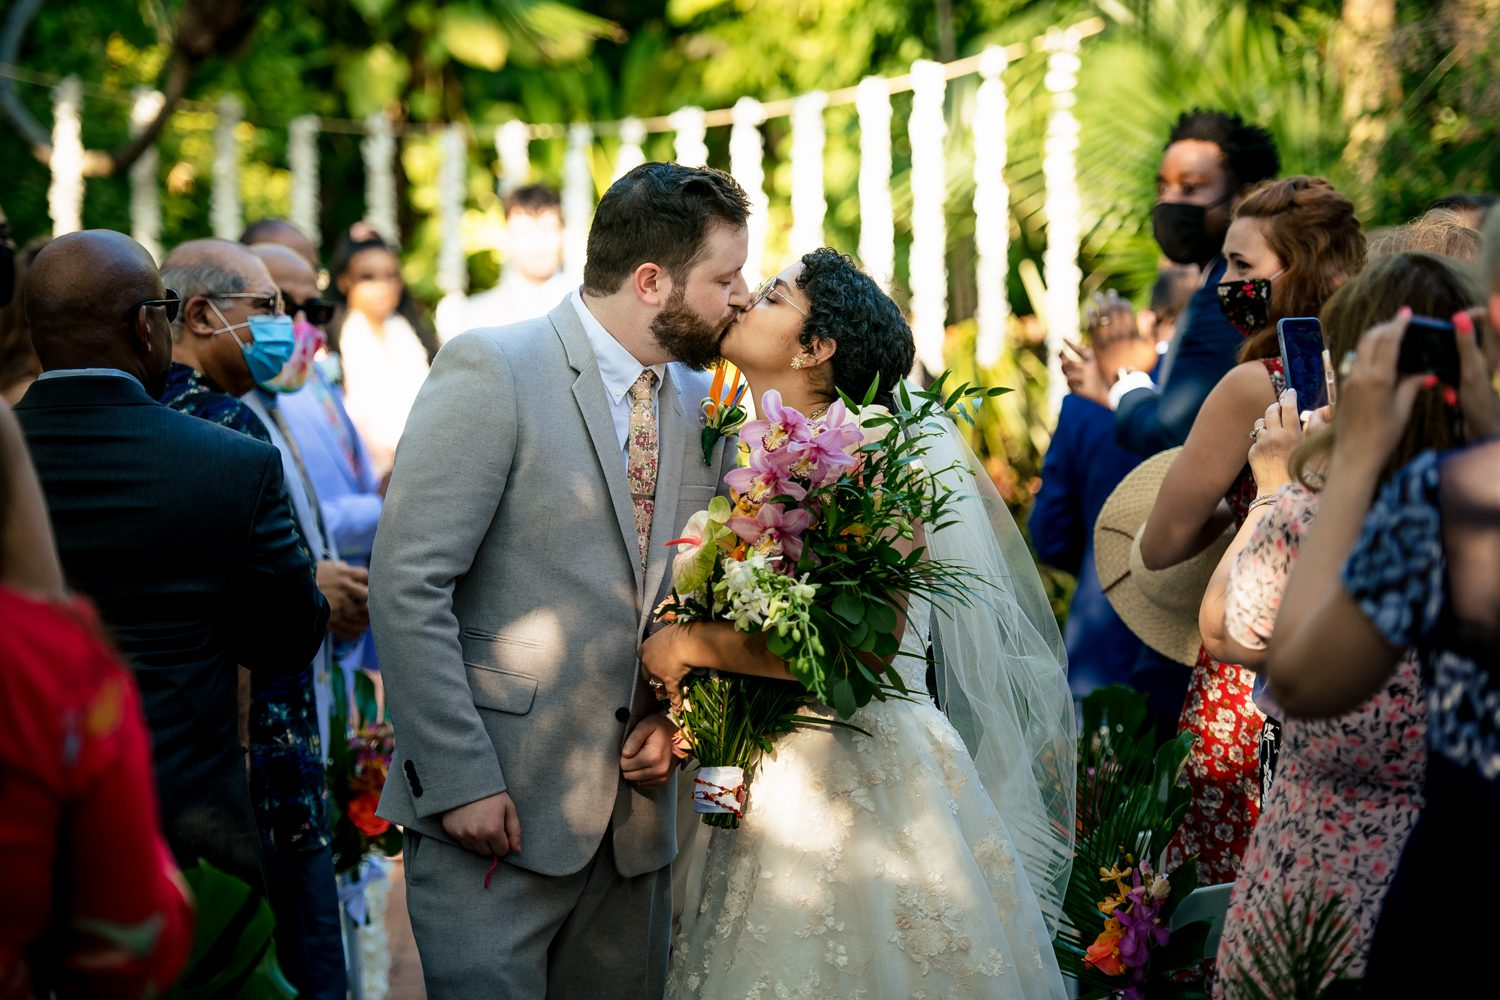 Bride and groom kissing during a wedding ceremony